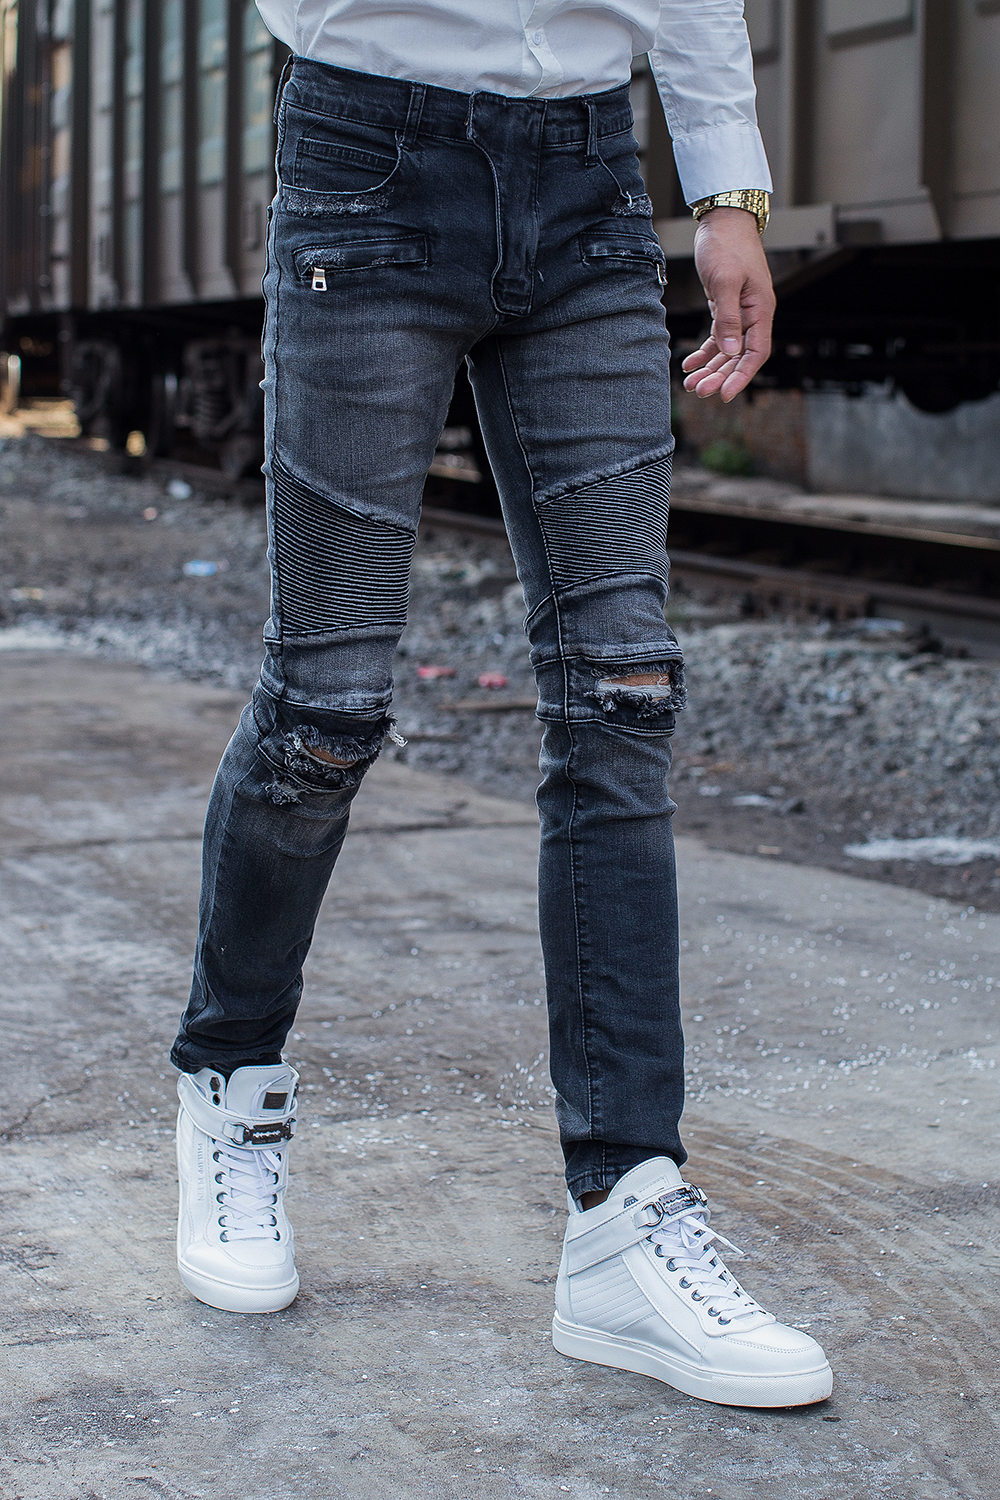 2017 new Men's Classic Jeans Straight Full Length Casual Fashion Biker Jeans Hip Hop Zipper Pocket Mens Jeans Slim Skinny Jeans hot new large size jeans fashion loose jeans hip hop casual jeans wide leg jeans page 3